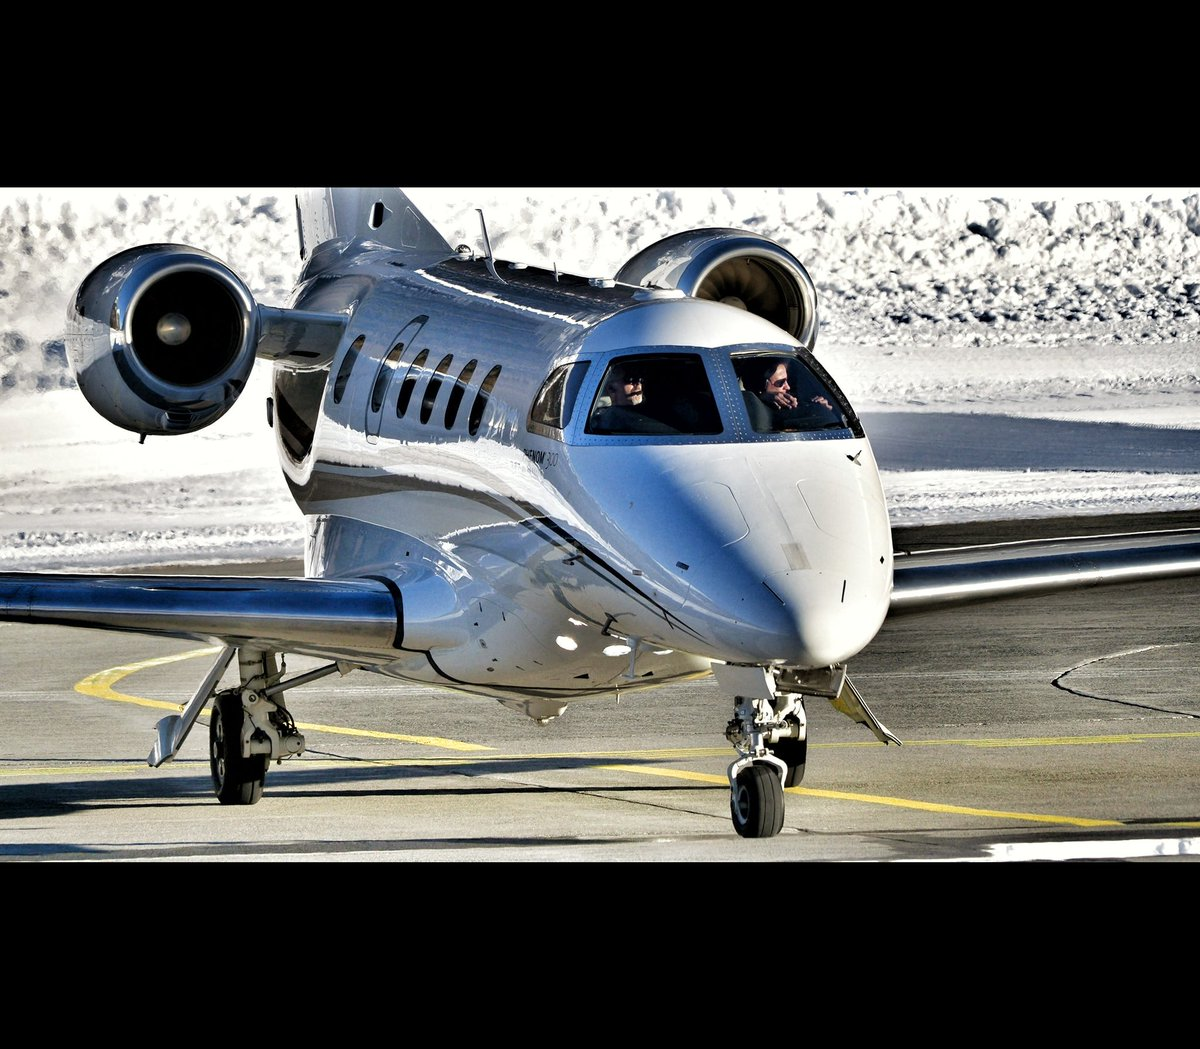 Embraer 505 @ Engadin Airport 09.02.2019 ..... .... Out now on YouTube by crosswind ... ... ... #DCDAS @embraer @embraerexecutivejets #Embraer505 #Phenom300  #valleytakeoff #corporatejets #bizjets #businessjet #privatejet #planespotting #aviation #lszs #EngadinAirport